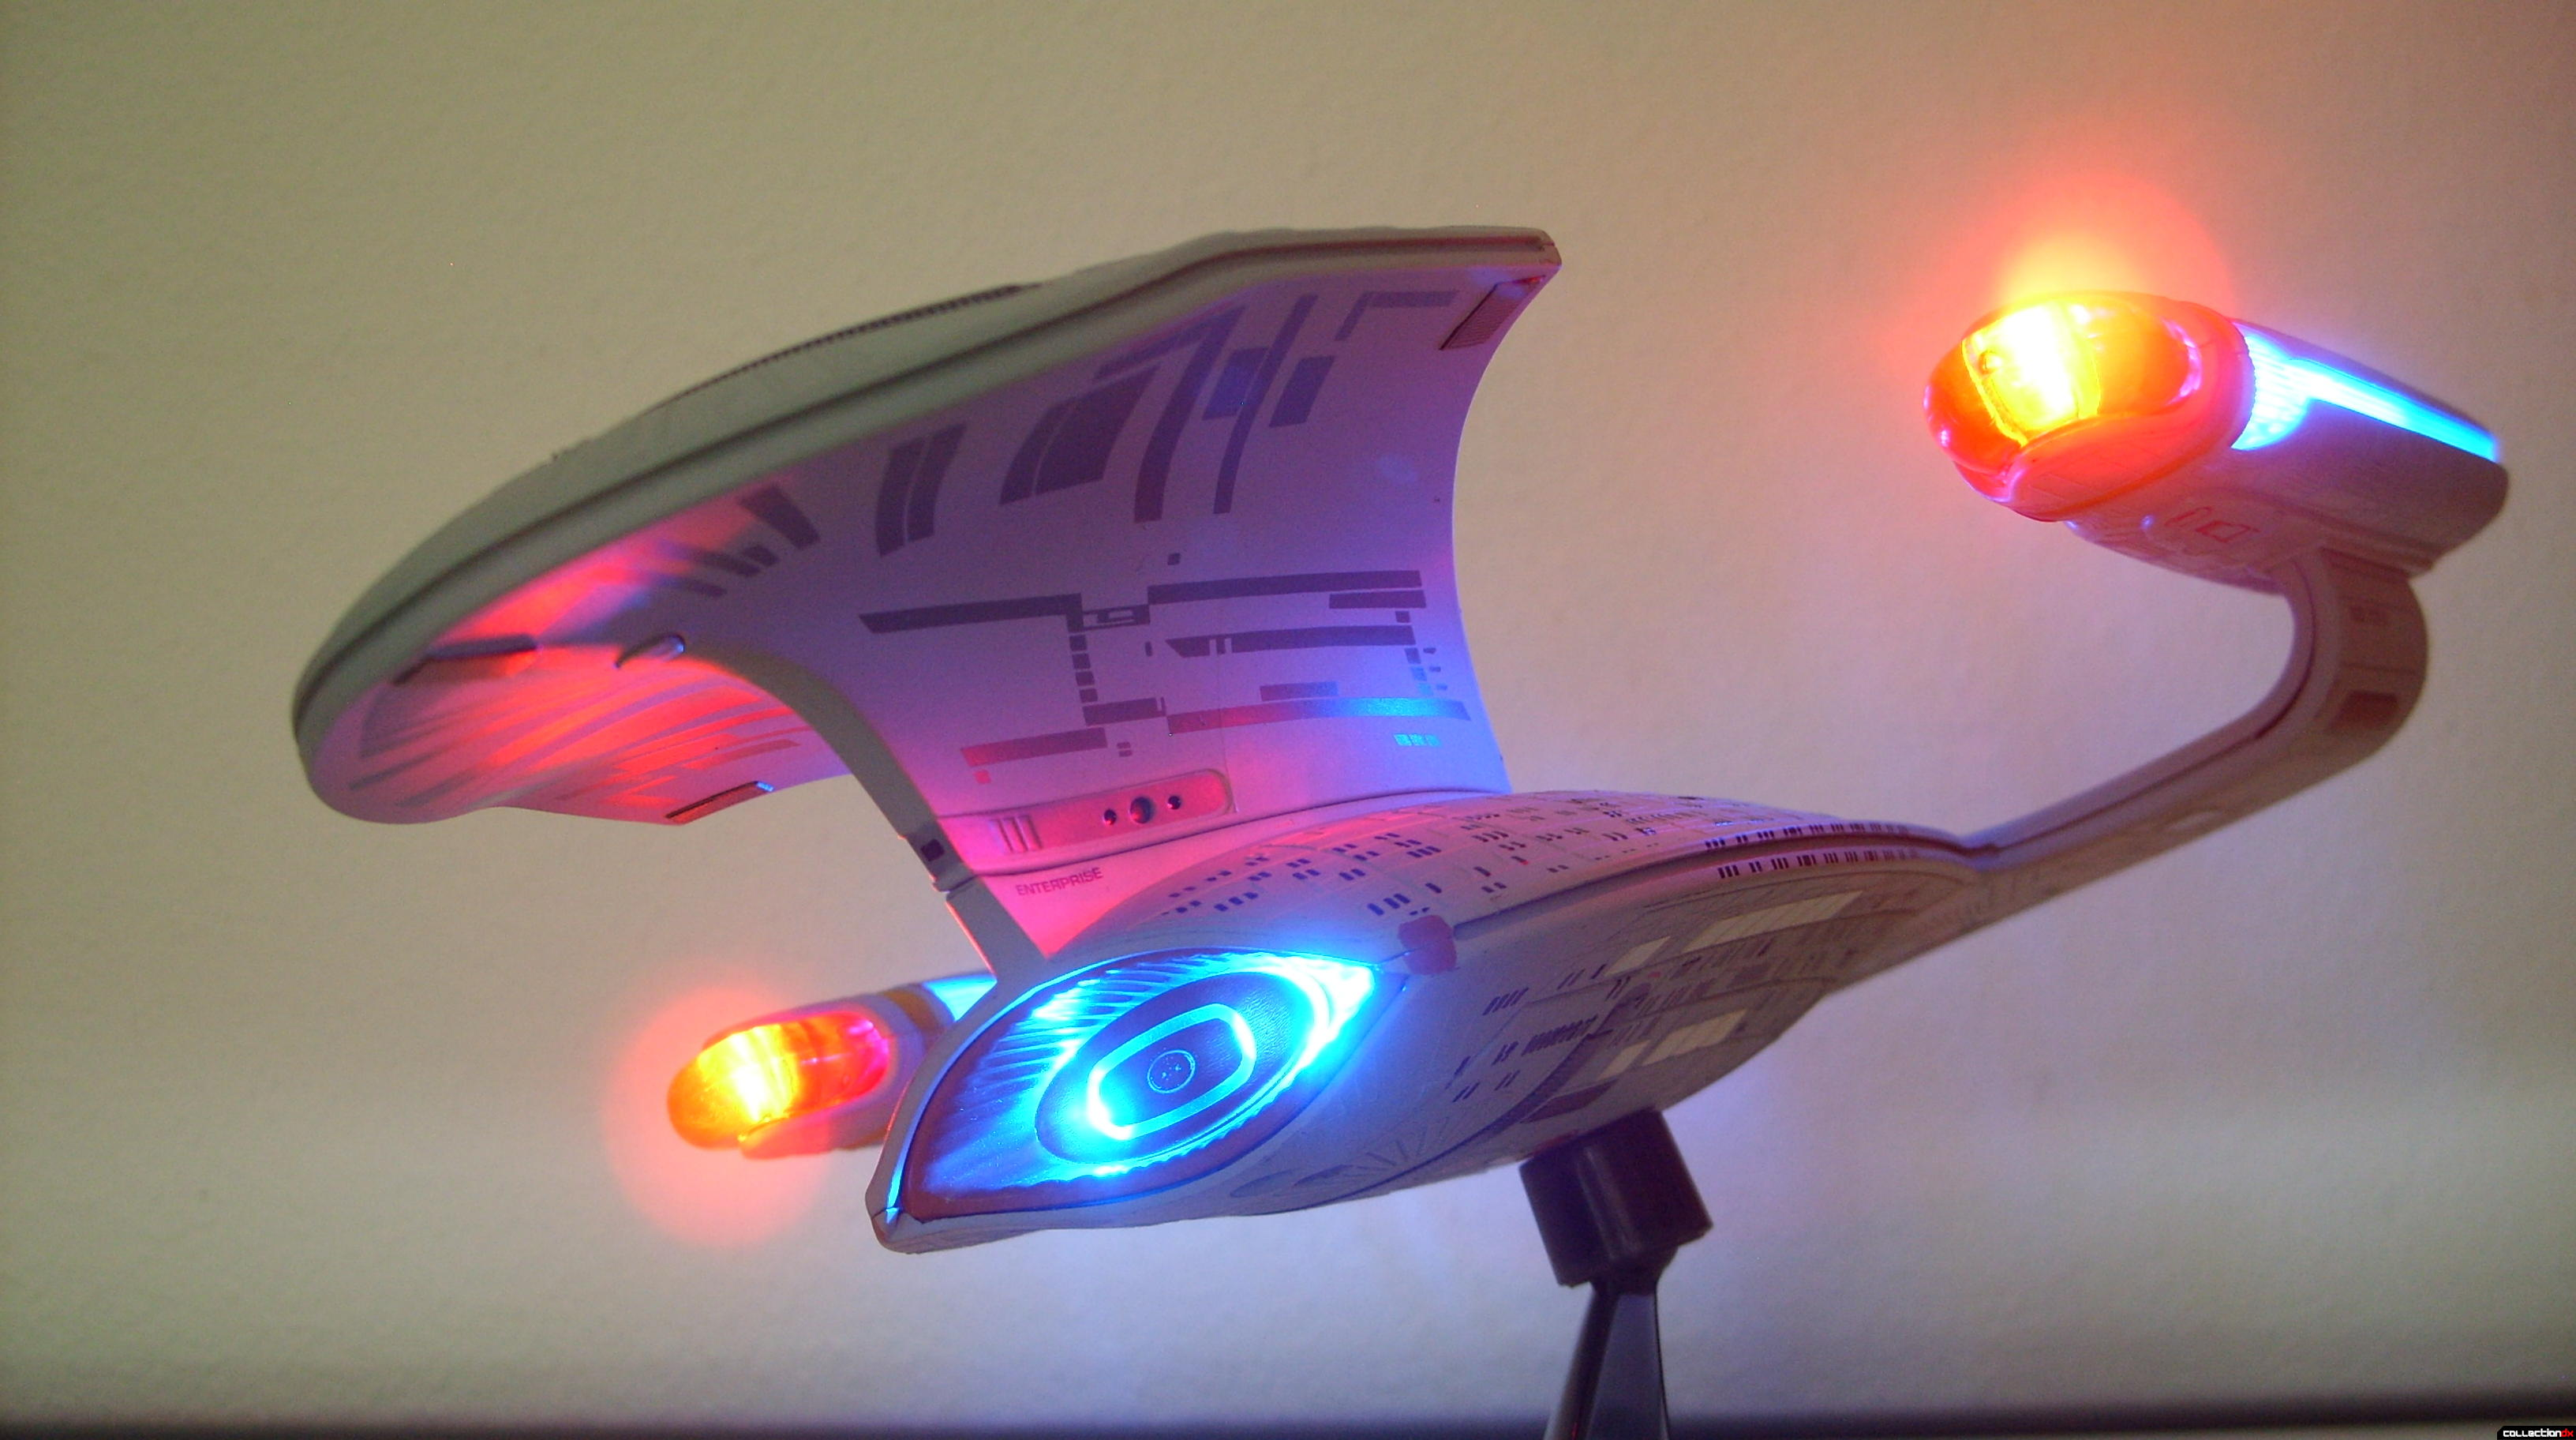 Starship Legends U.S.S. Enterprise-D (Battle Section dramatic angle)